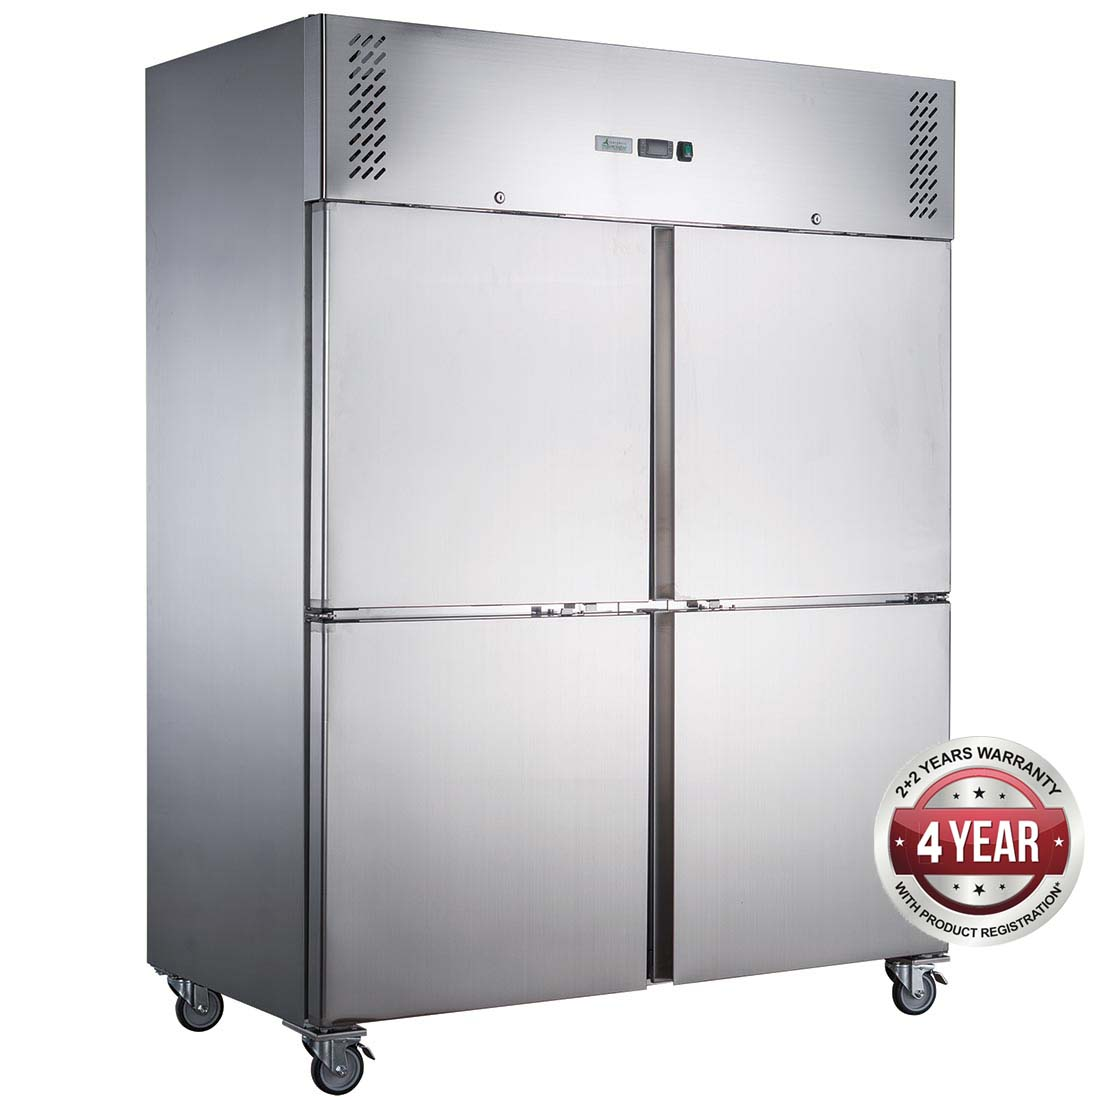 FED-X S/S Four Door Upright Fridge - XURC1410S2V